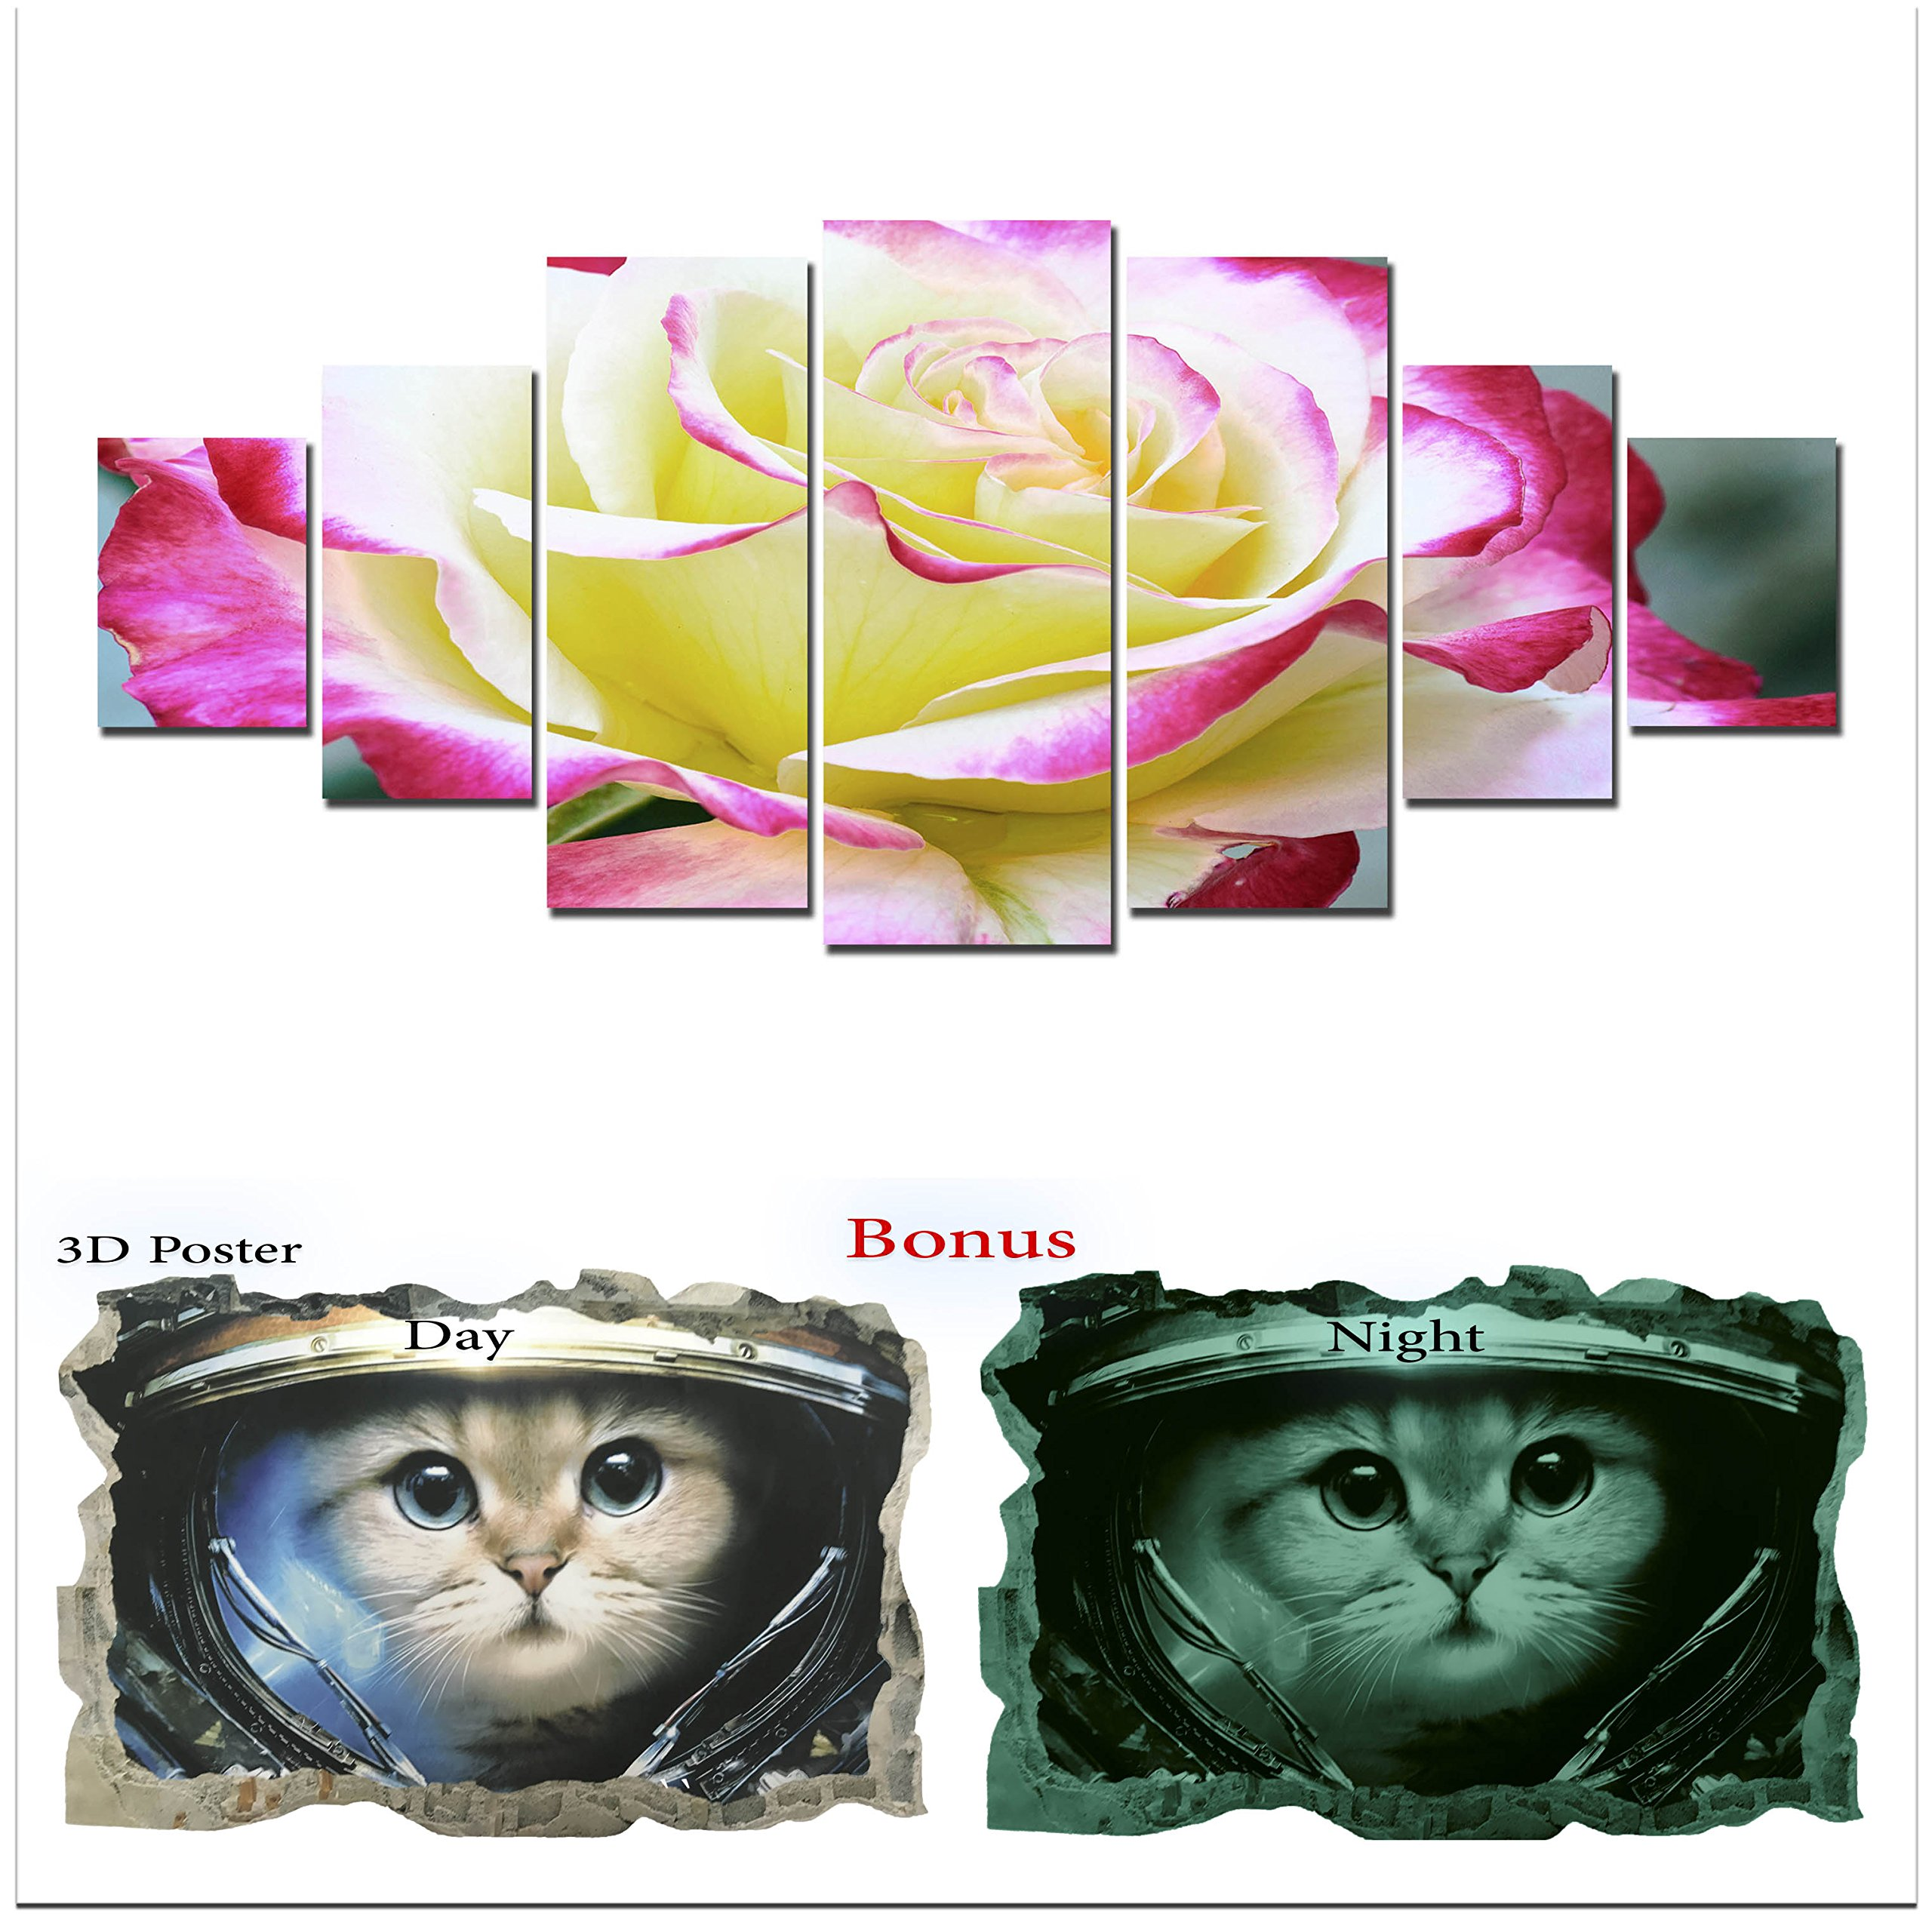 Large Canvas Wall Art Flowers Startonight HD Big Set, Glow Painting Beautiful Rose, Unique Modern Europe Framed Artwork, Bonus Gift 3D Poster Cat for Kids